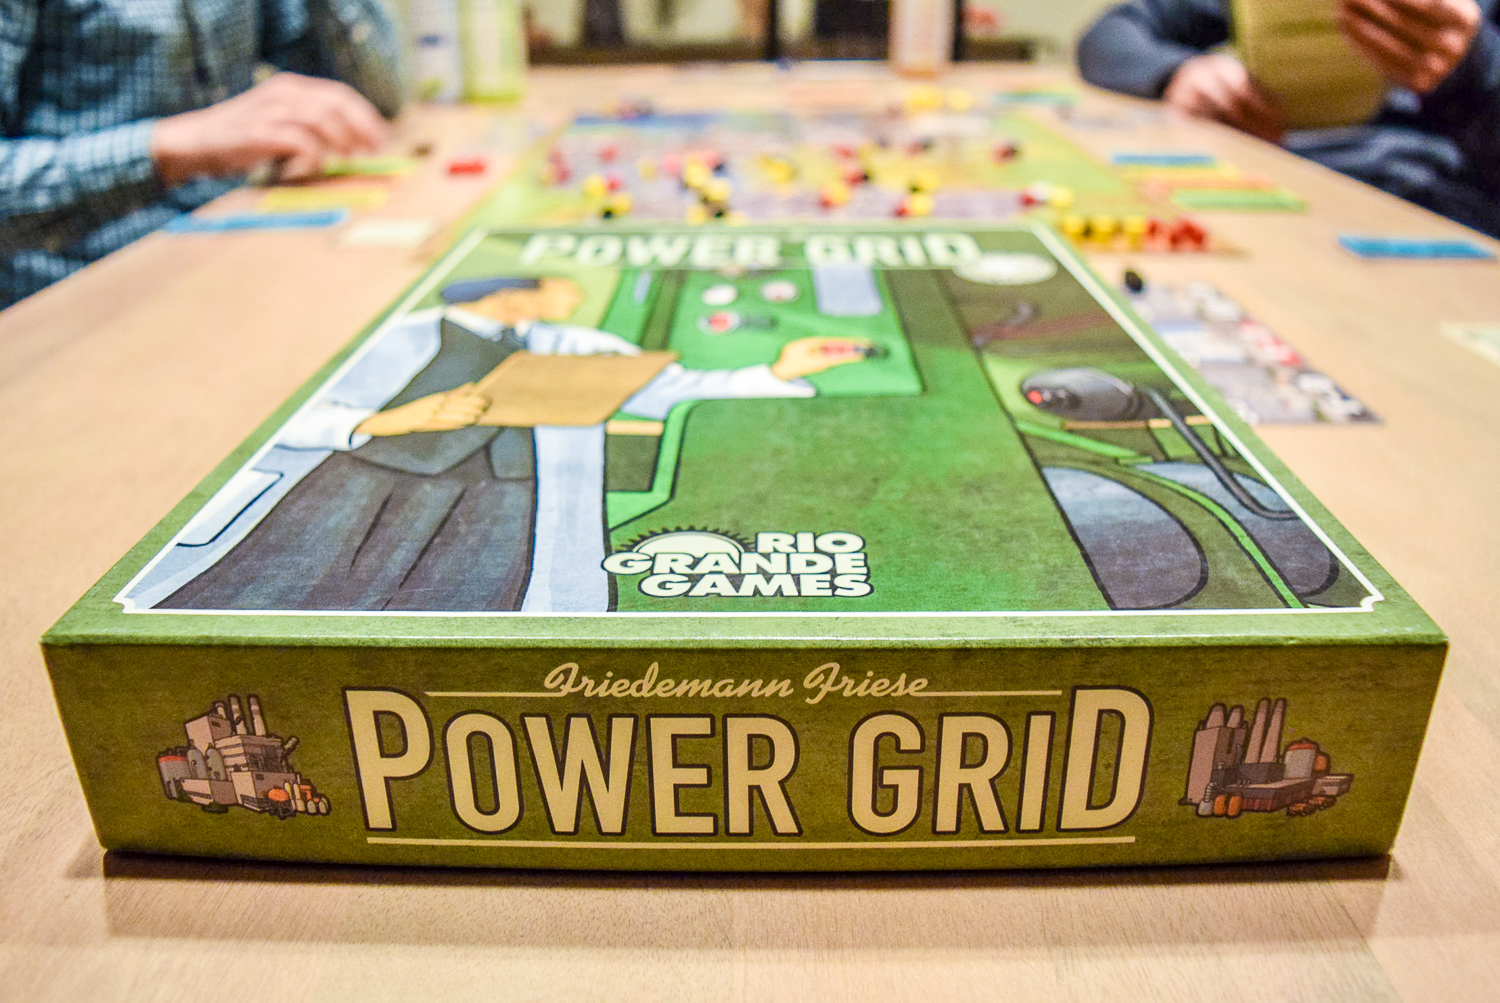 Top Three Reasons to Love Power Grid